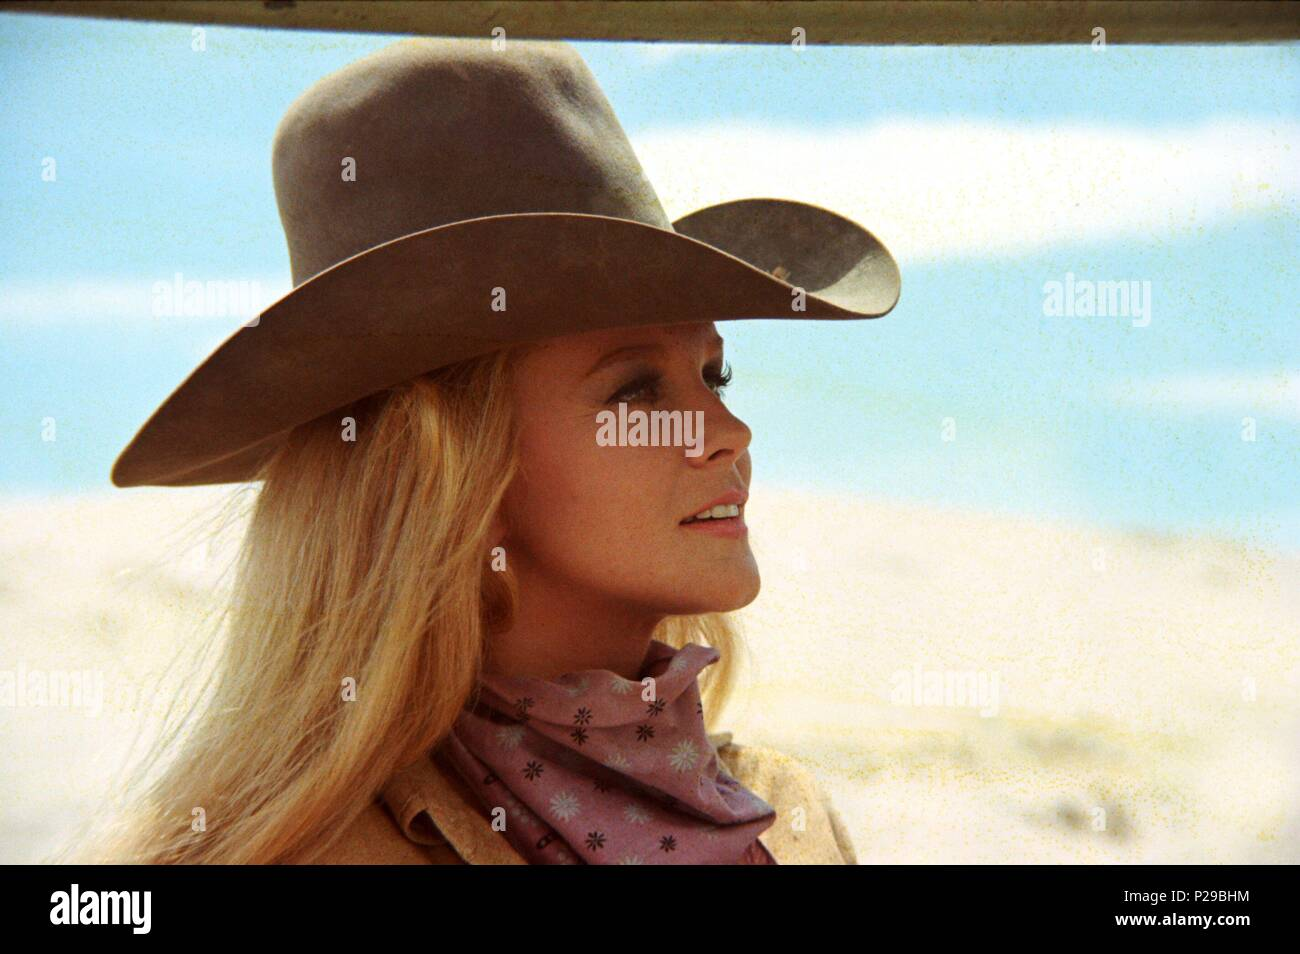 Original Film Title: THE TRAIN ROBBERS.  English Title: THE TRAIN ROBBERS.  Film Director: BURT KENNEDY.  Year: 1973.  Stars: ANN-MARGRET. Credit: WARNER BROTHERS / Album - Stock Image